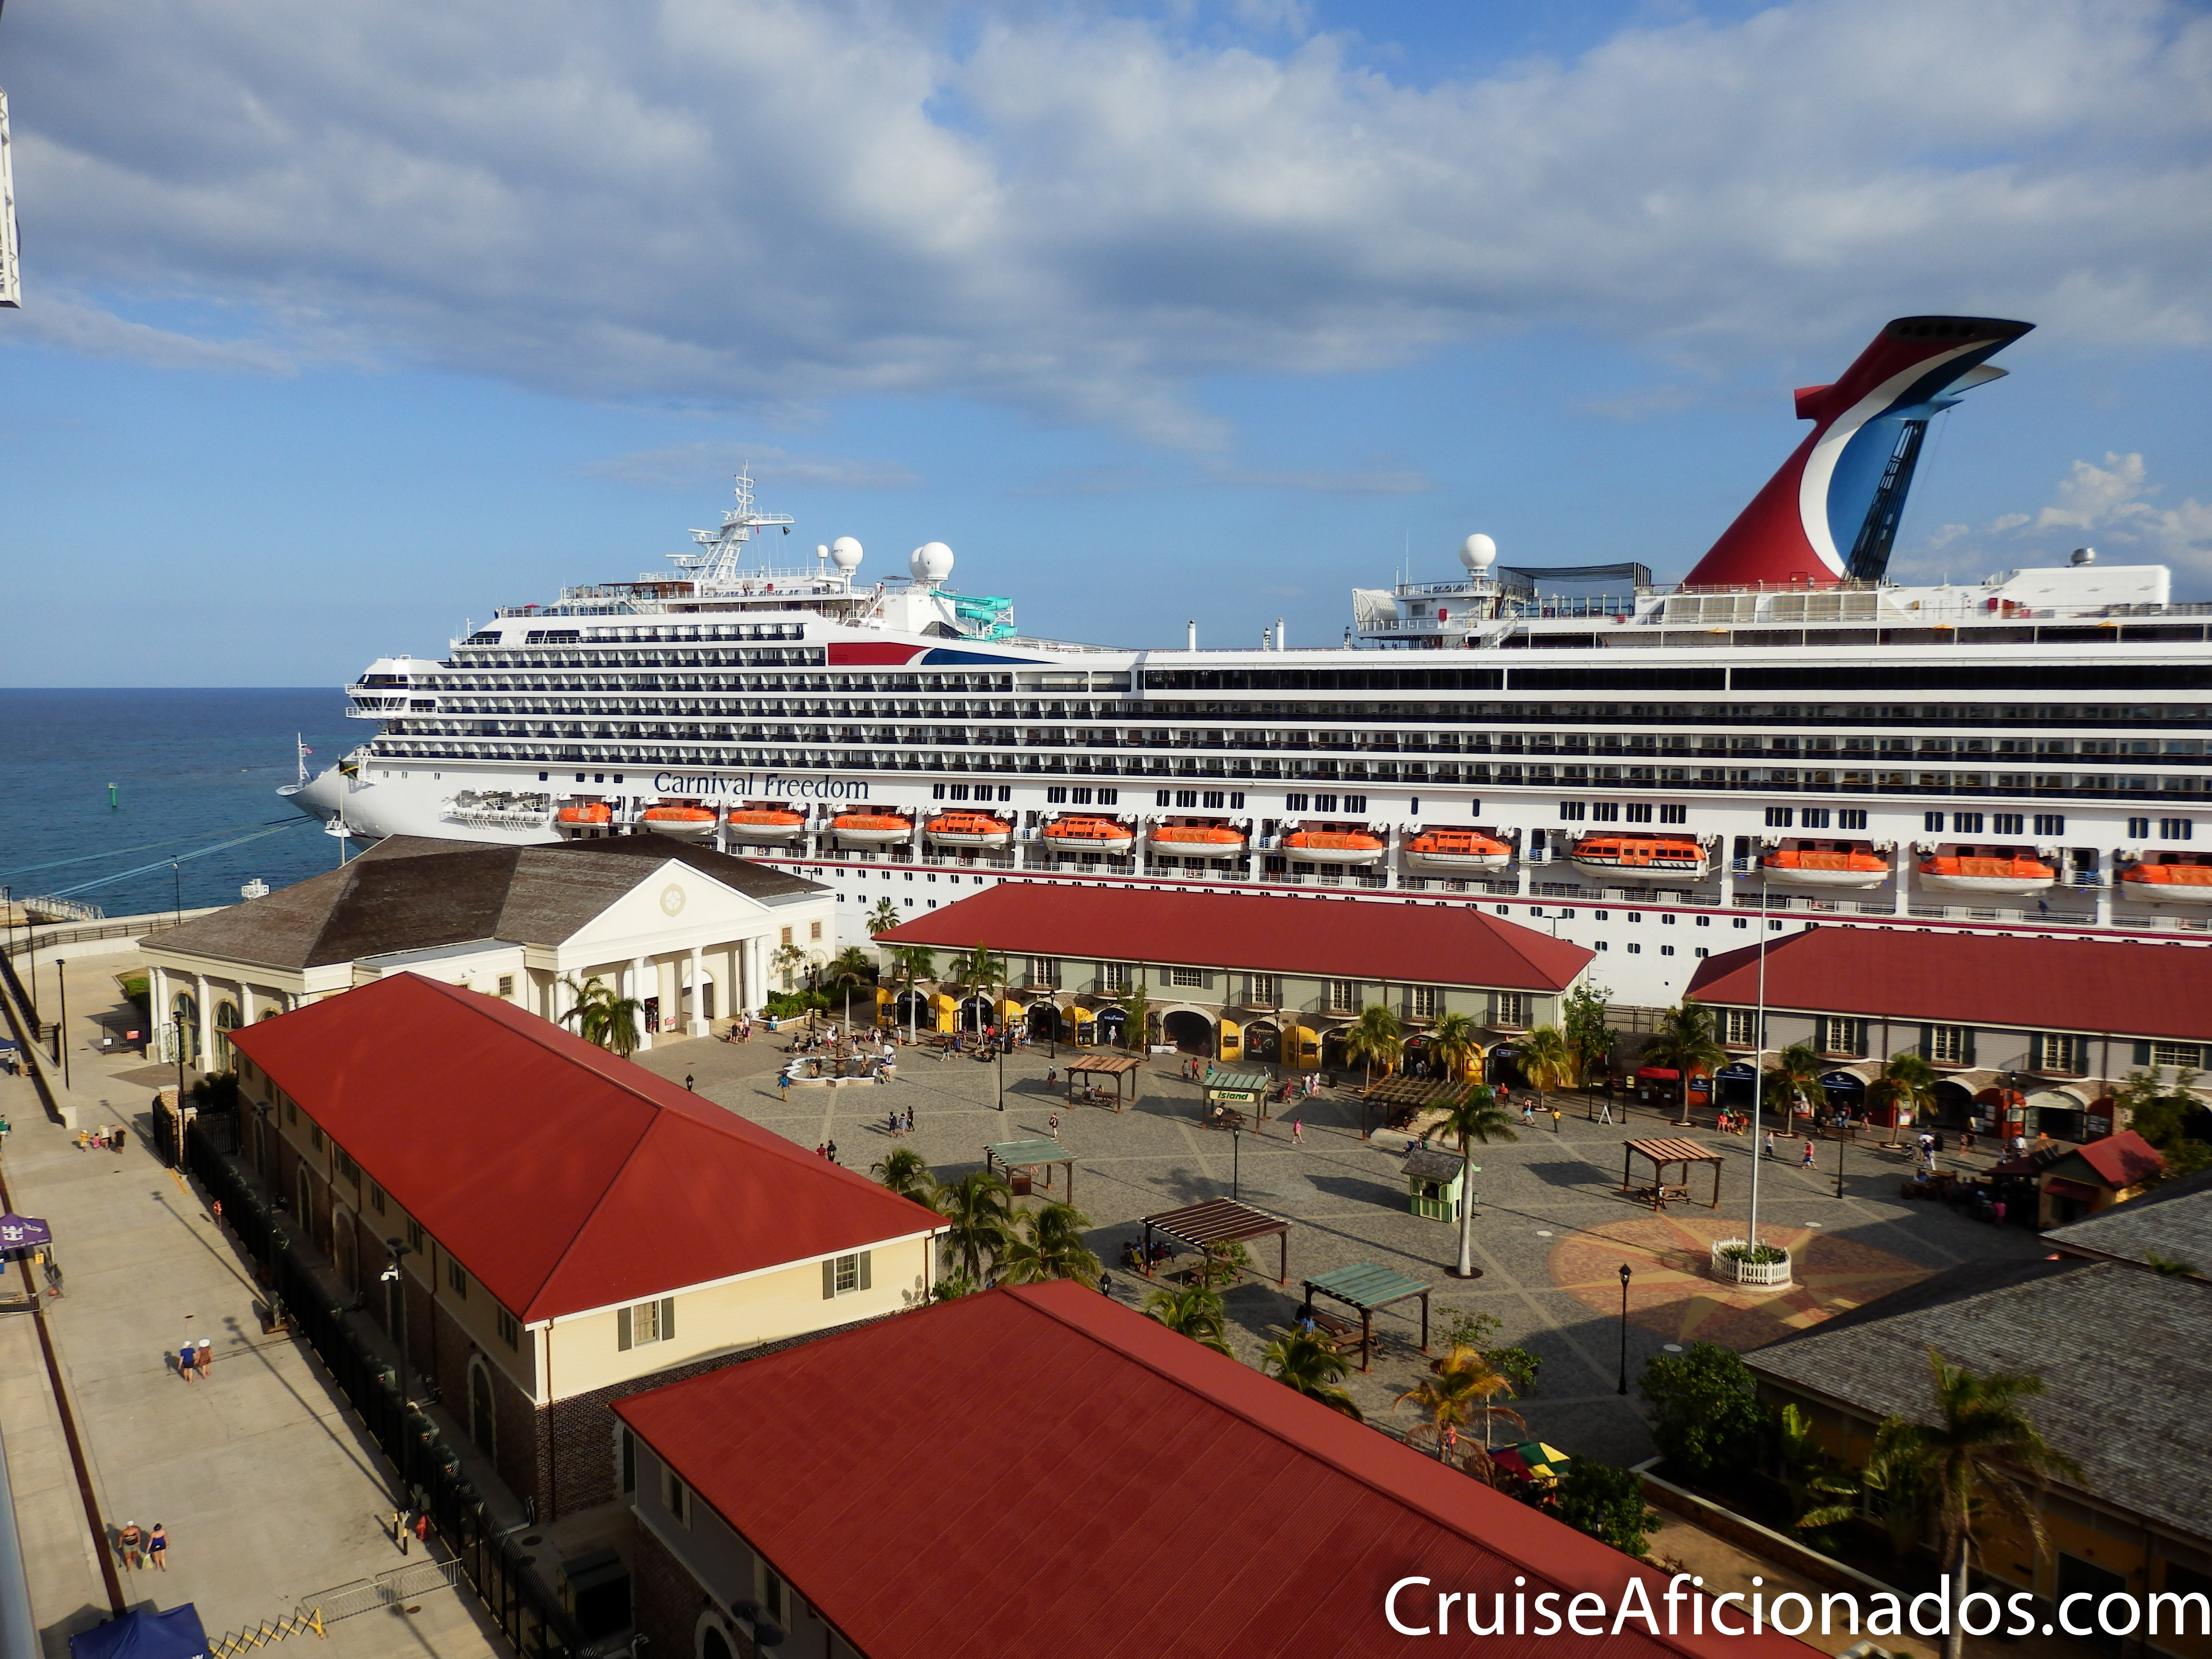 The Falmouth cruise port.